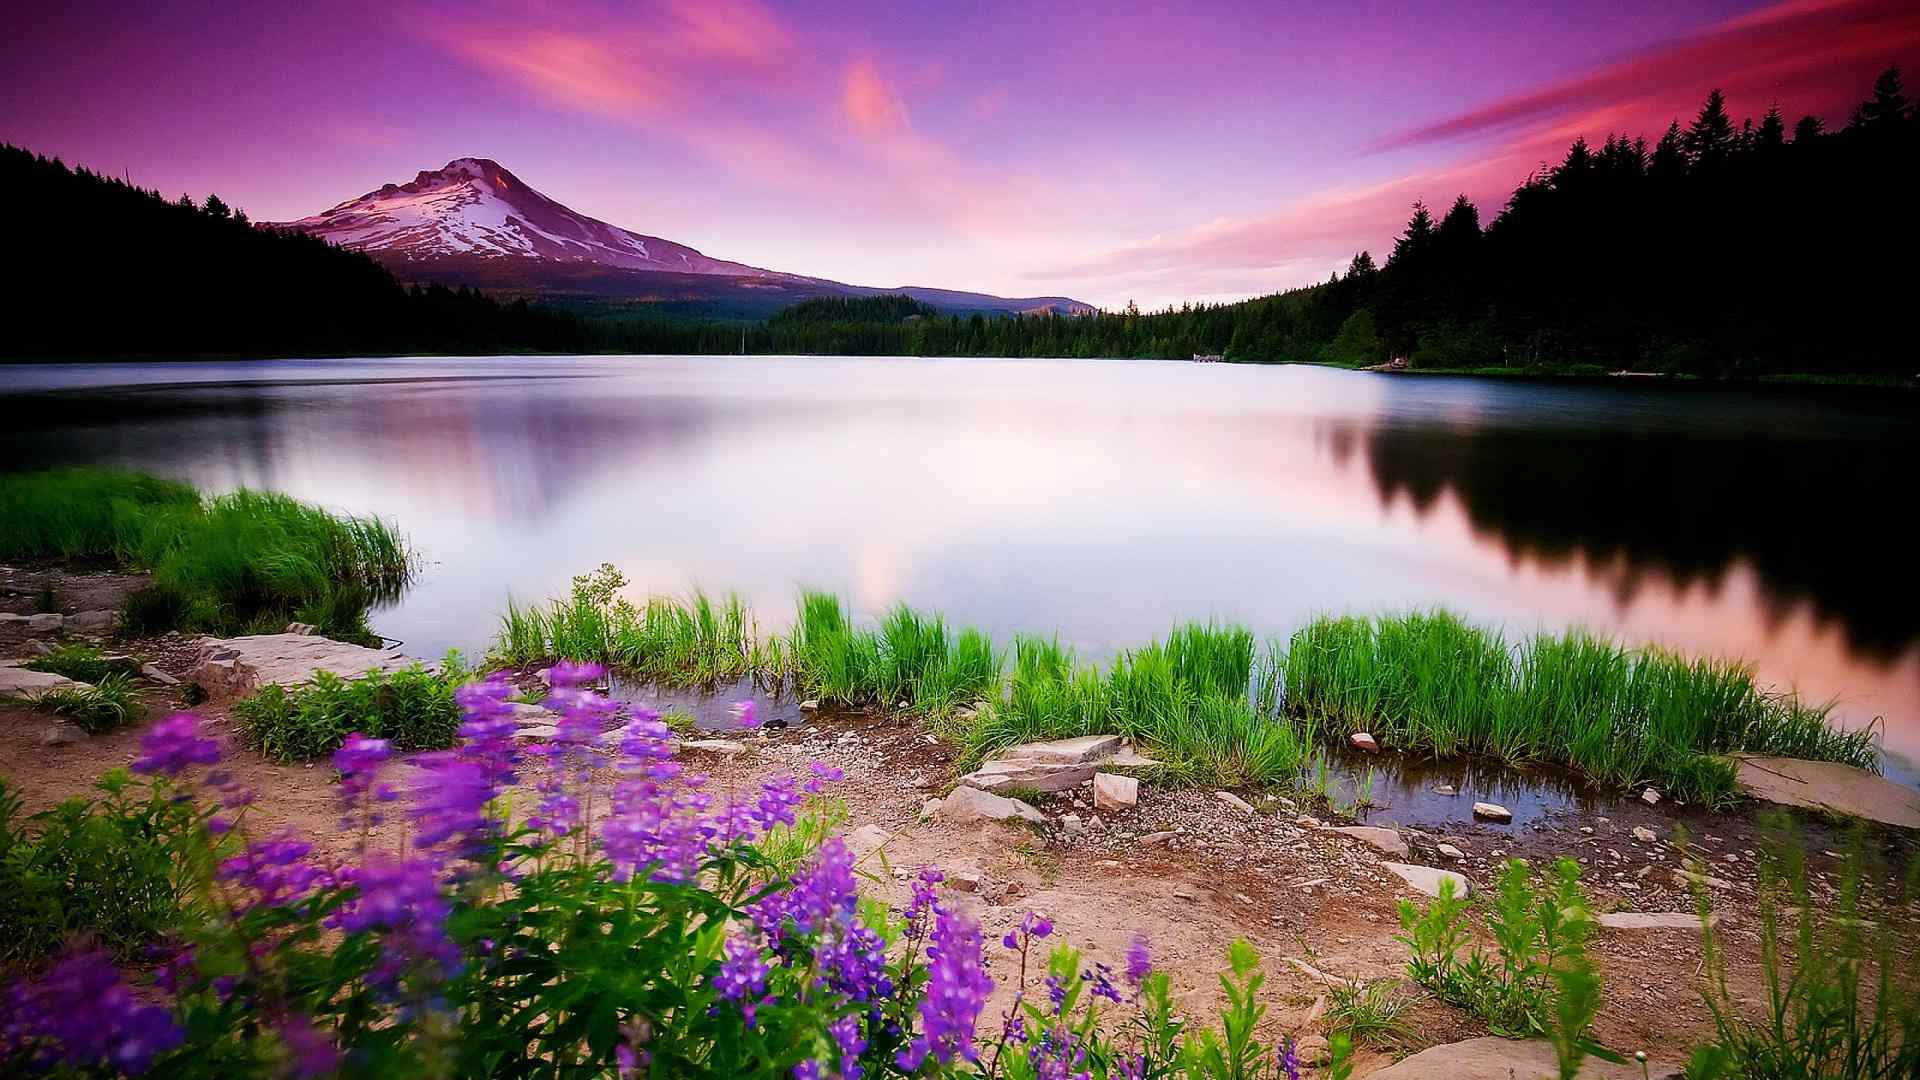 Nature Scenery, HD Nature, 4k Wallpapers, Images ...